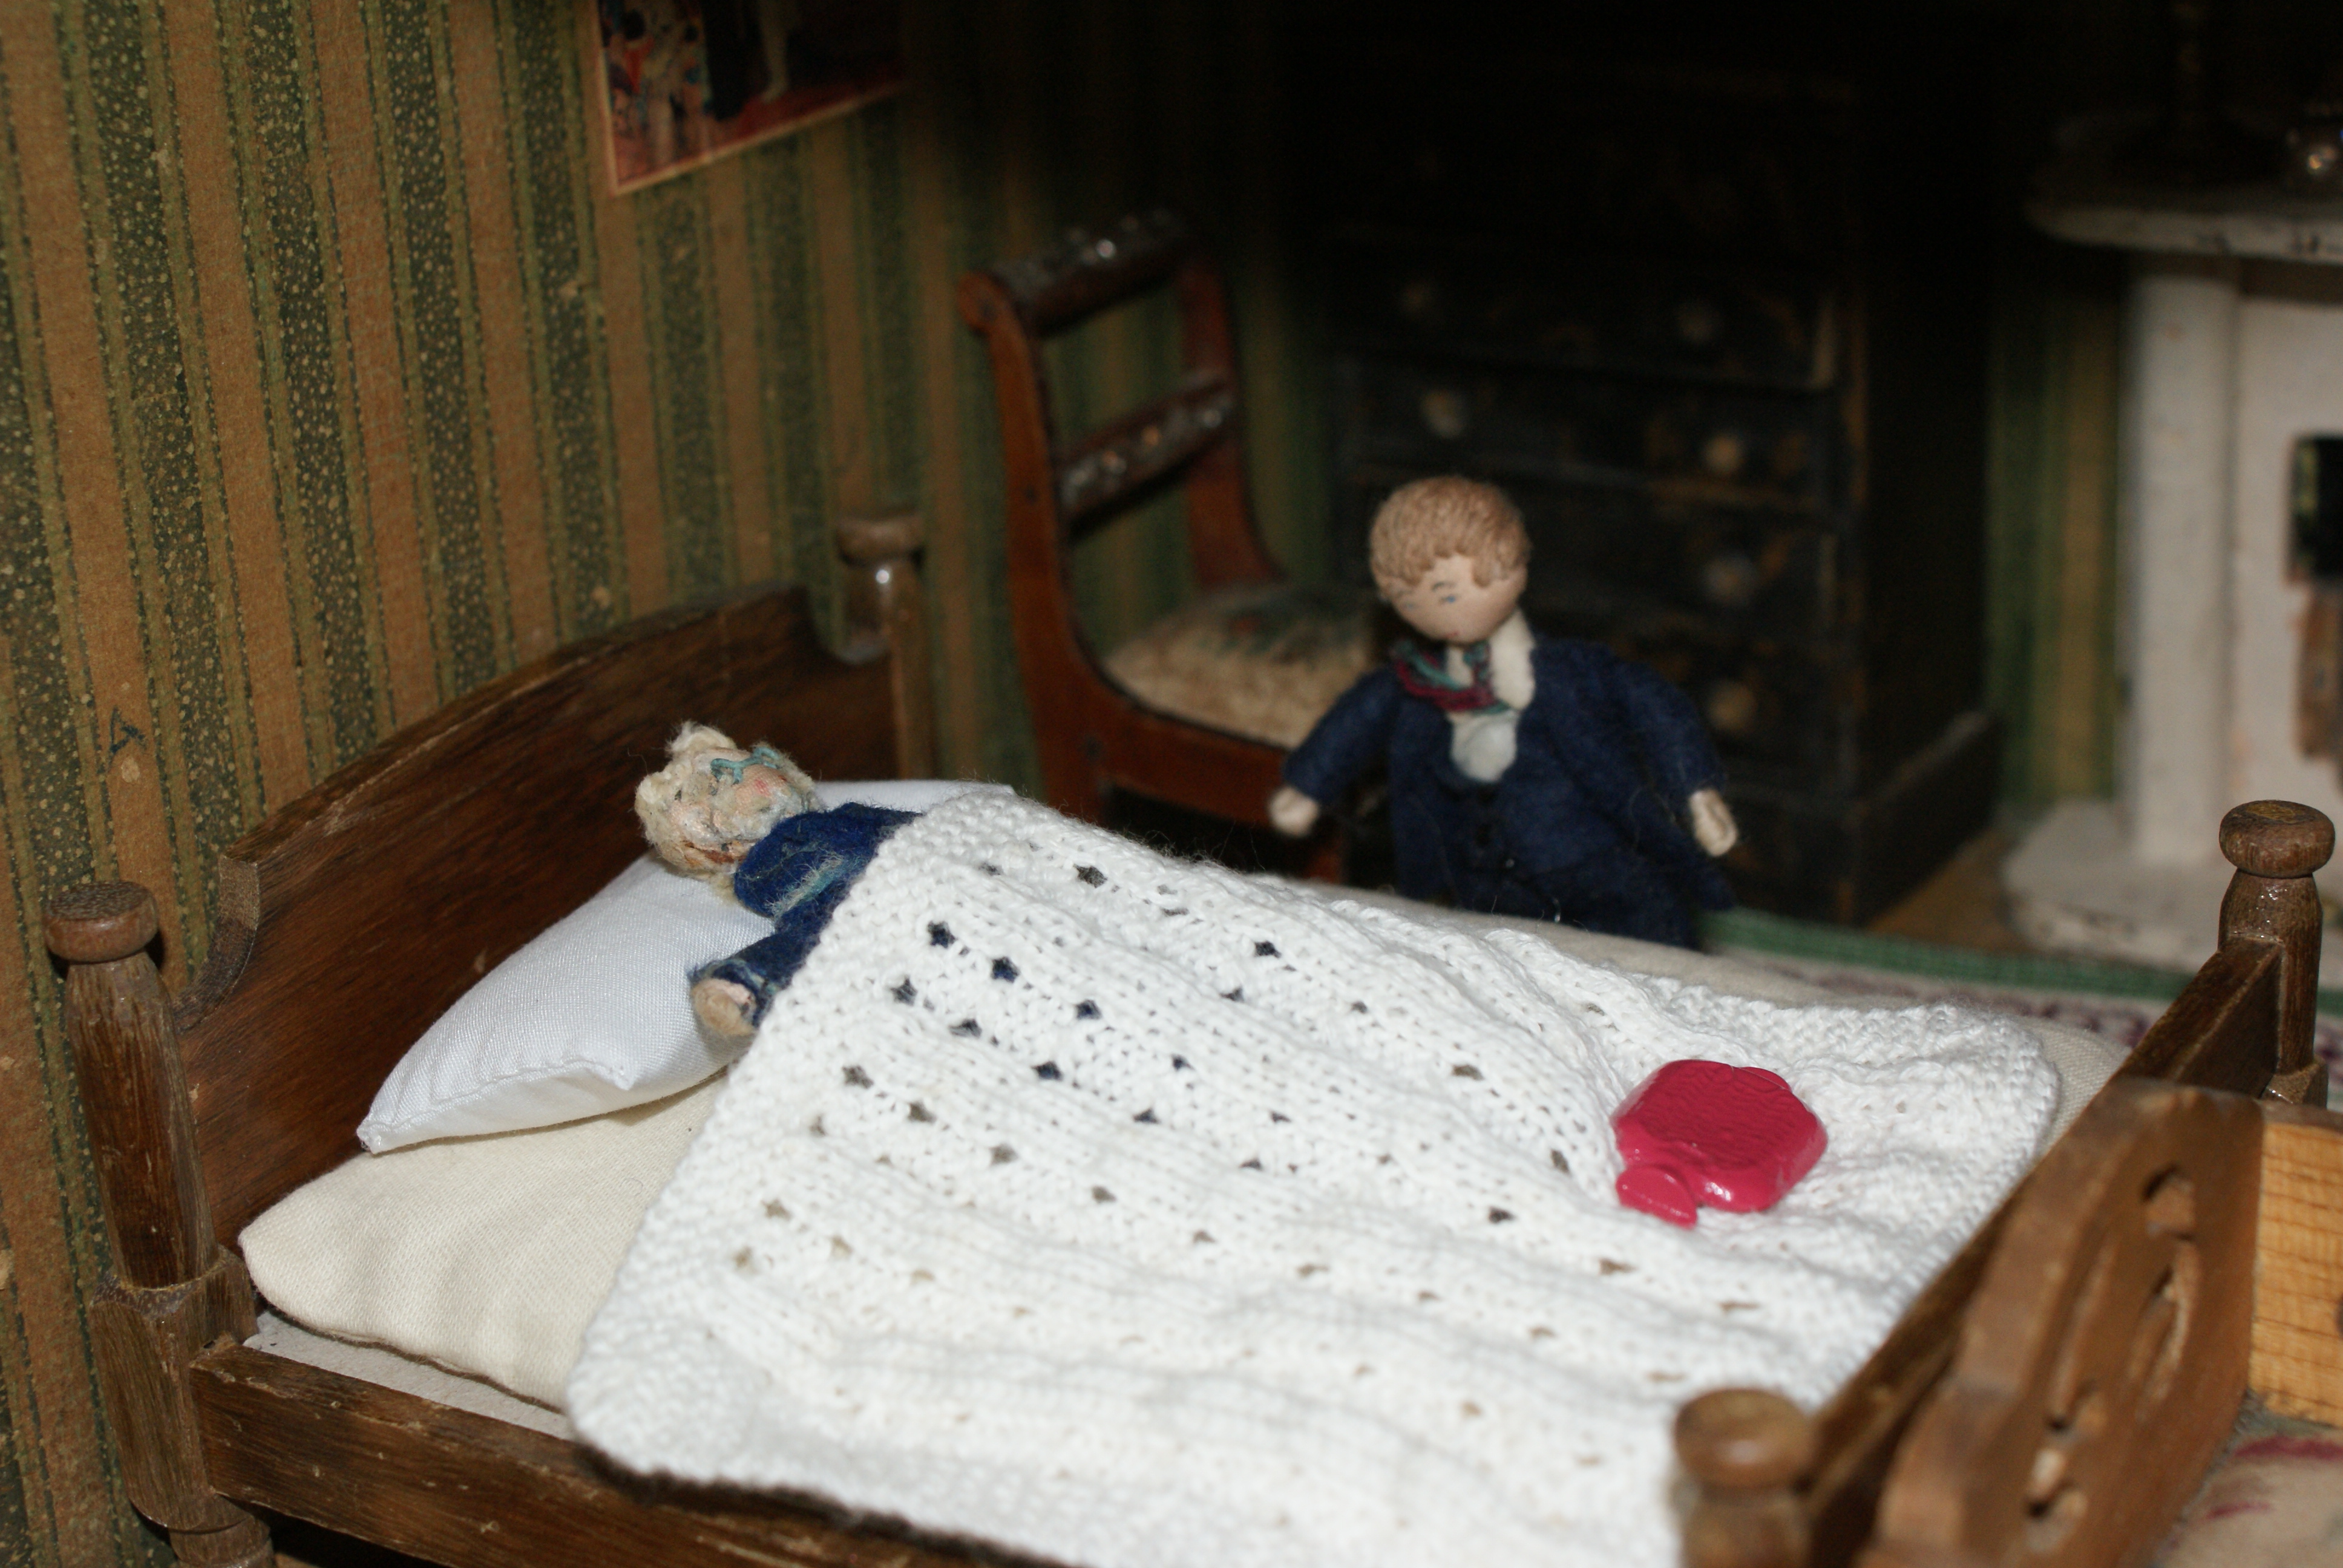 George approached the bed cautiously